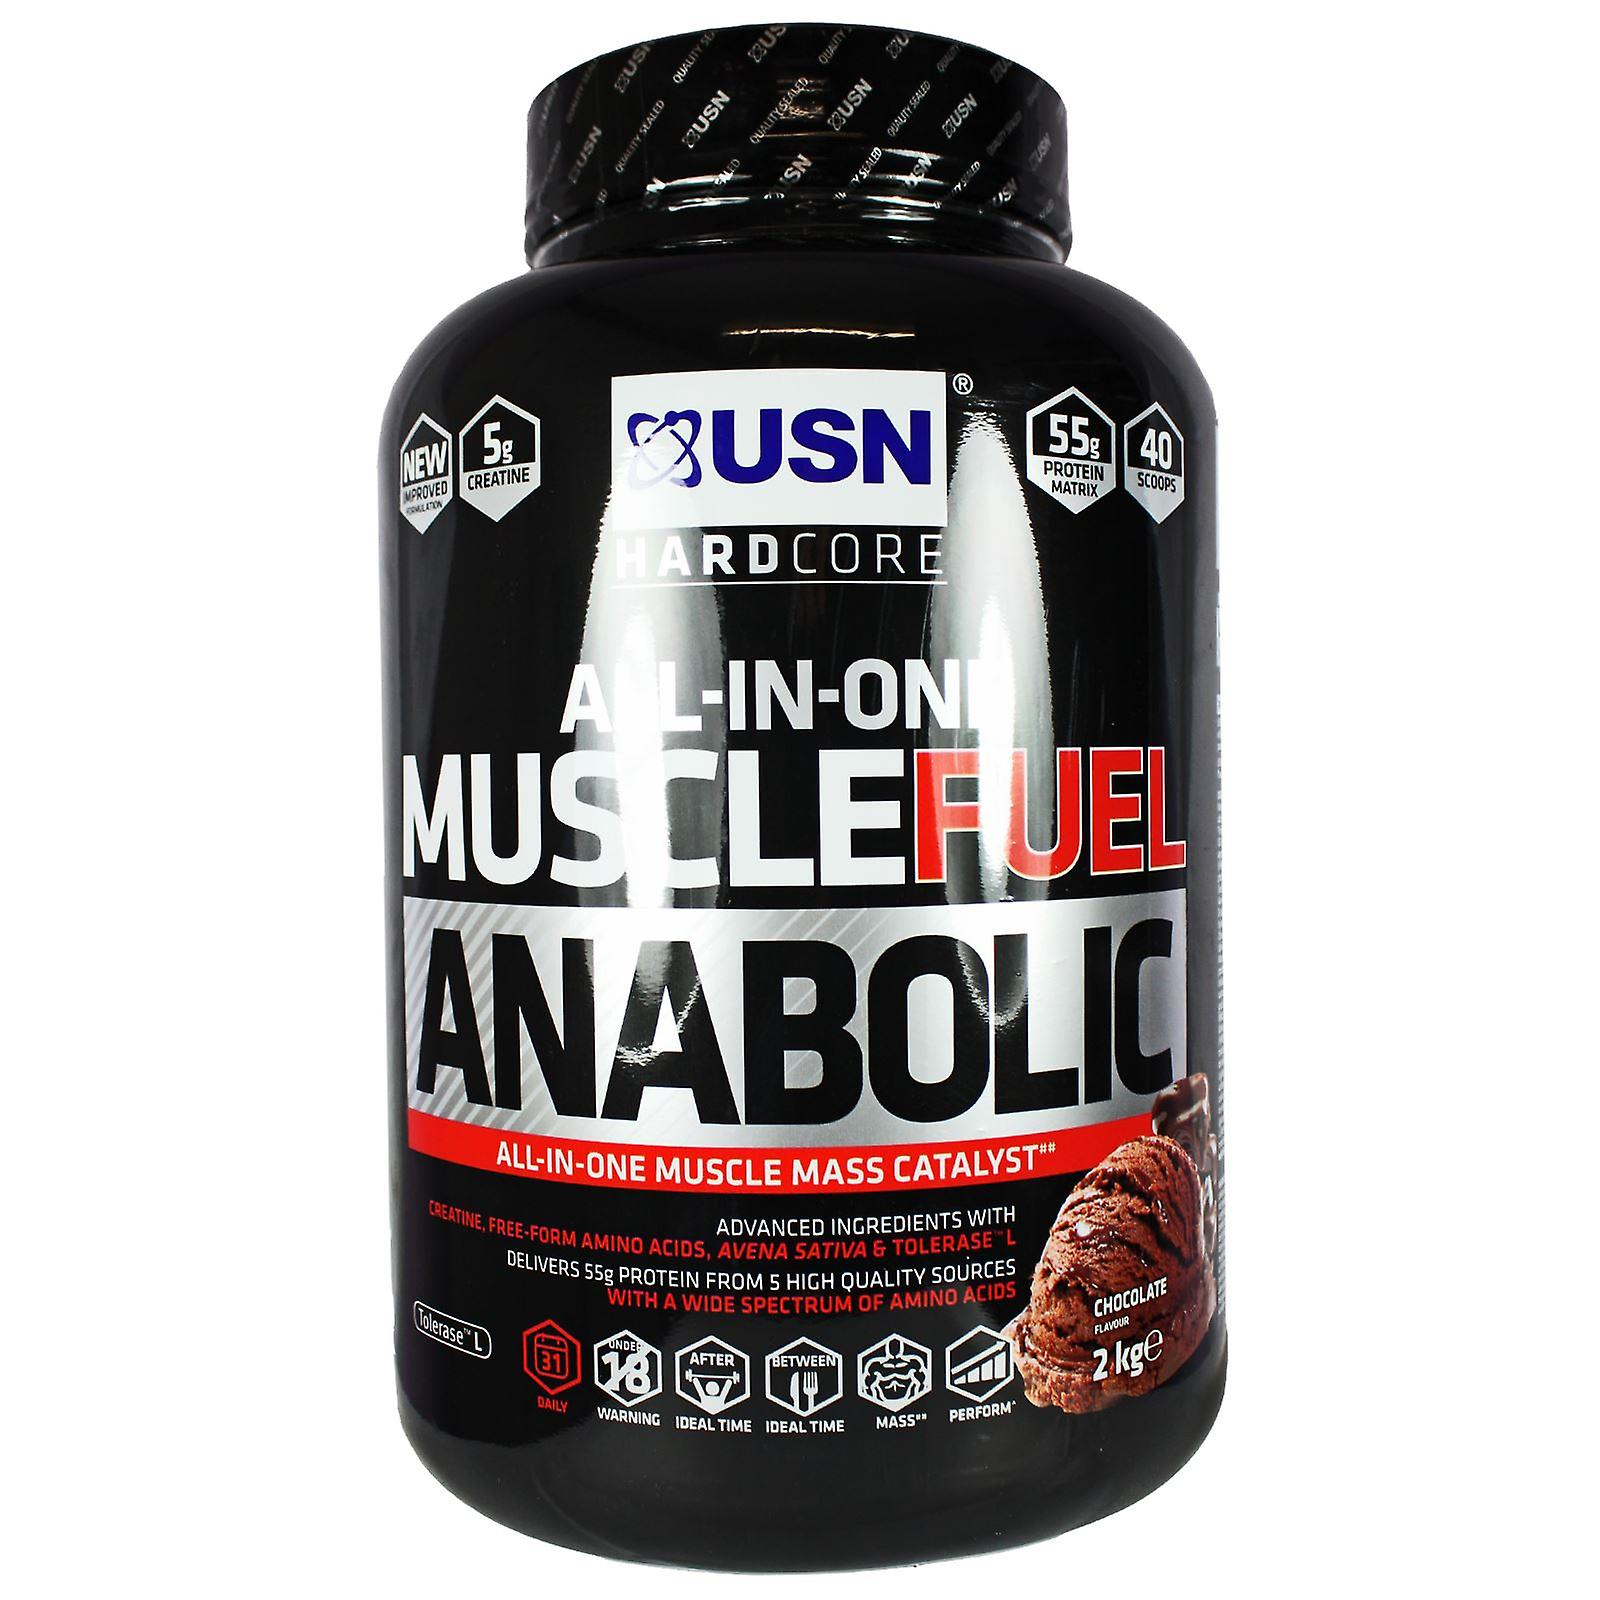 USN Muscle Fuel Anabolic 2kg Chocolate